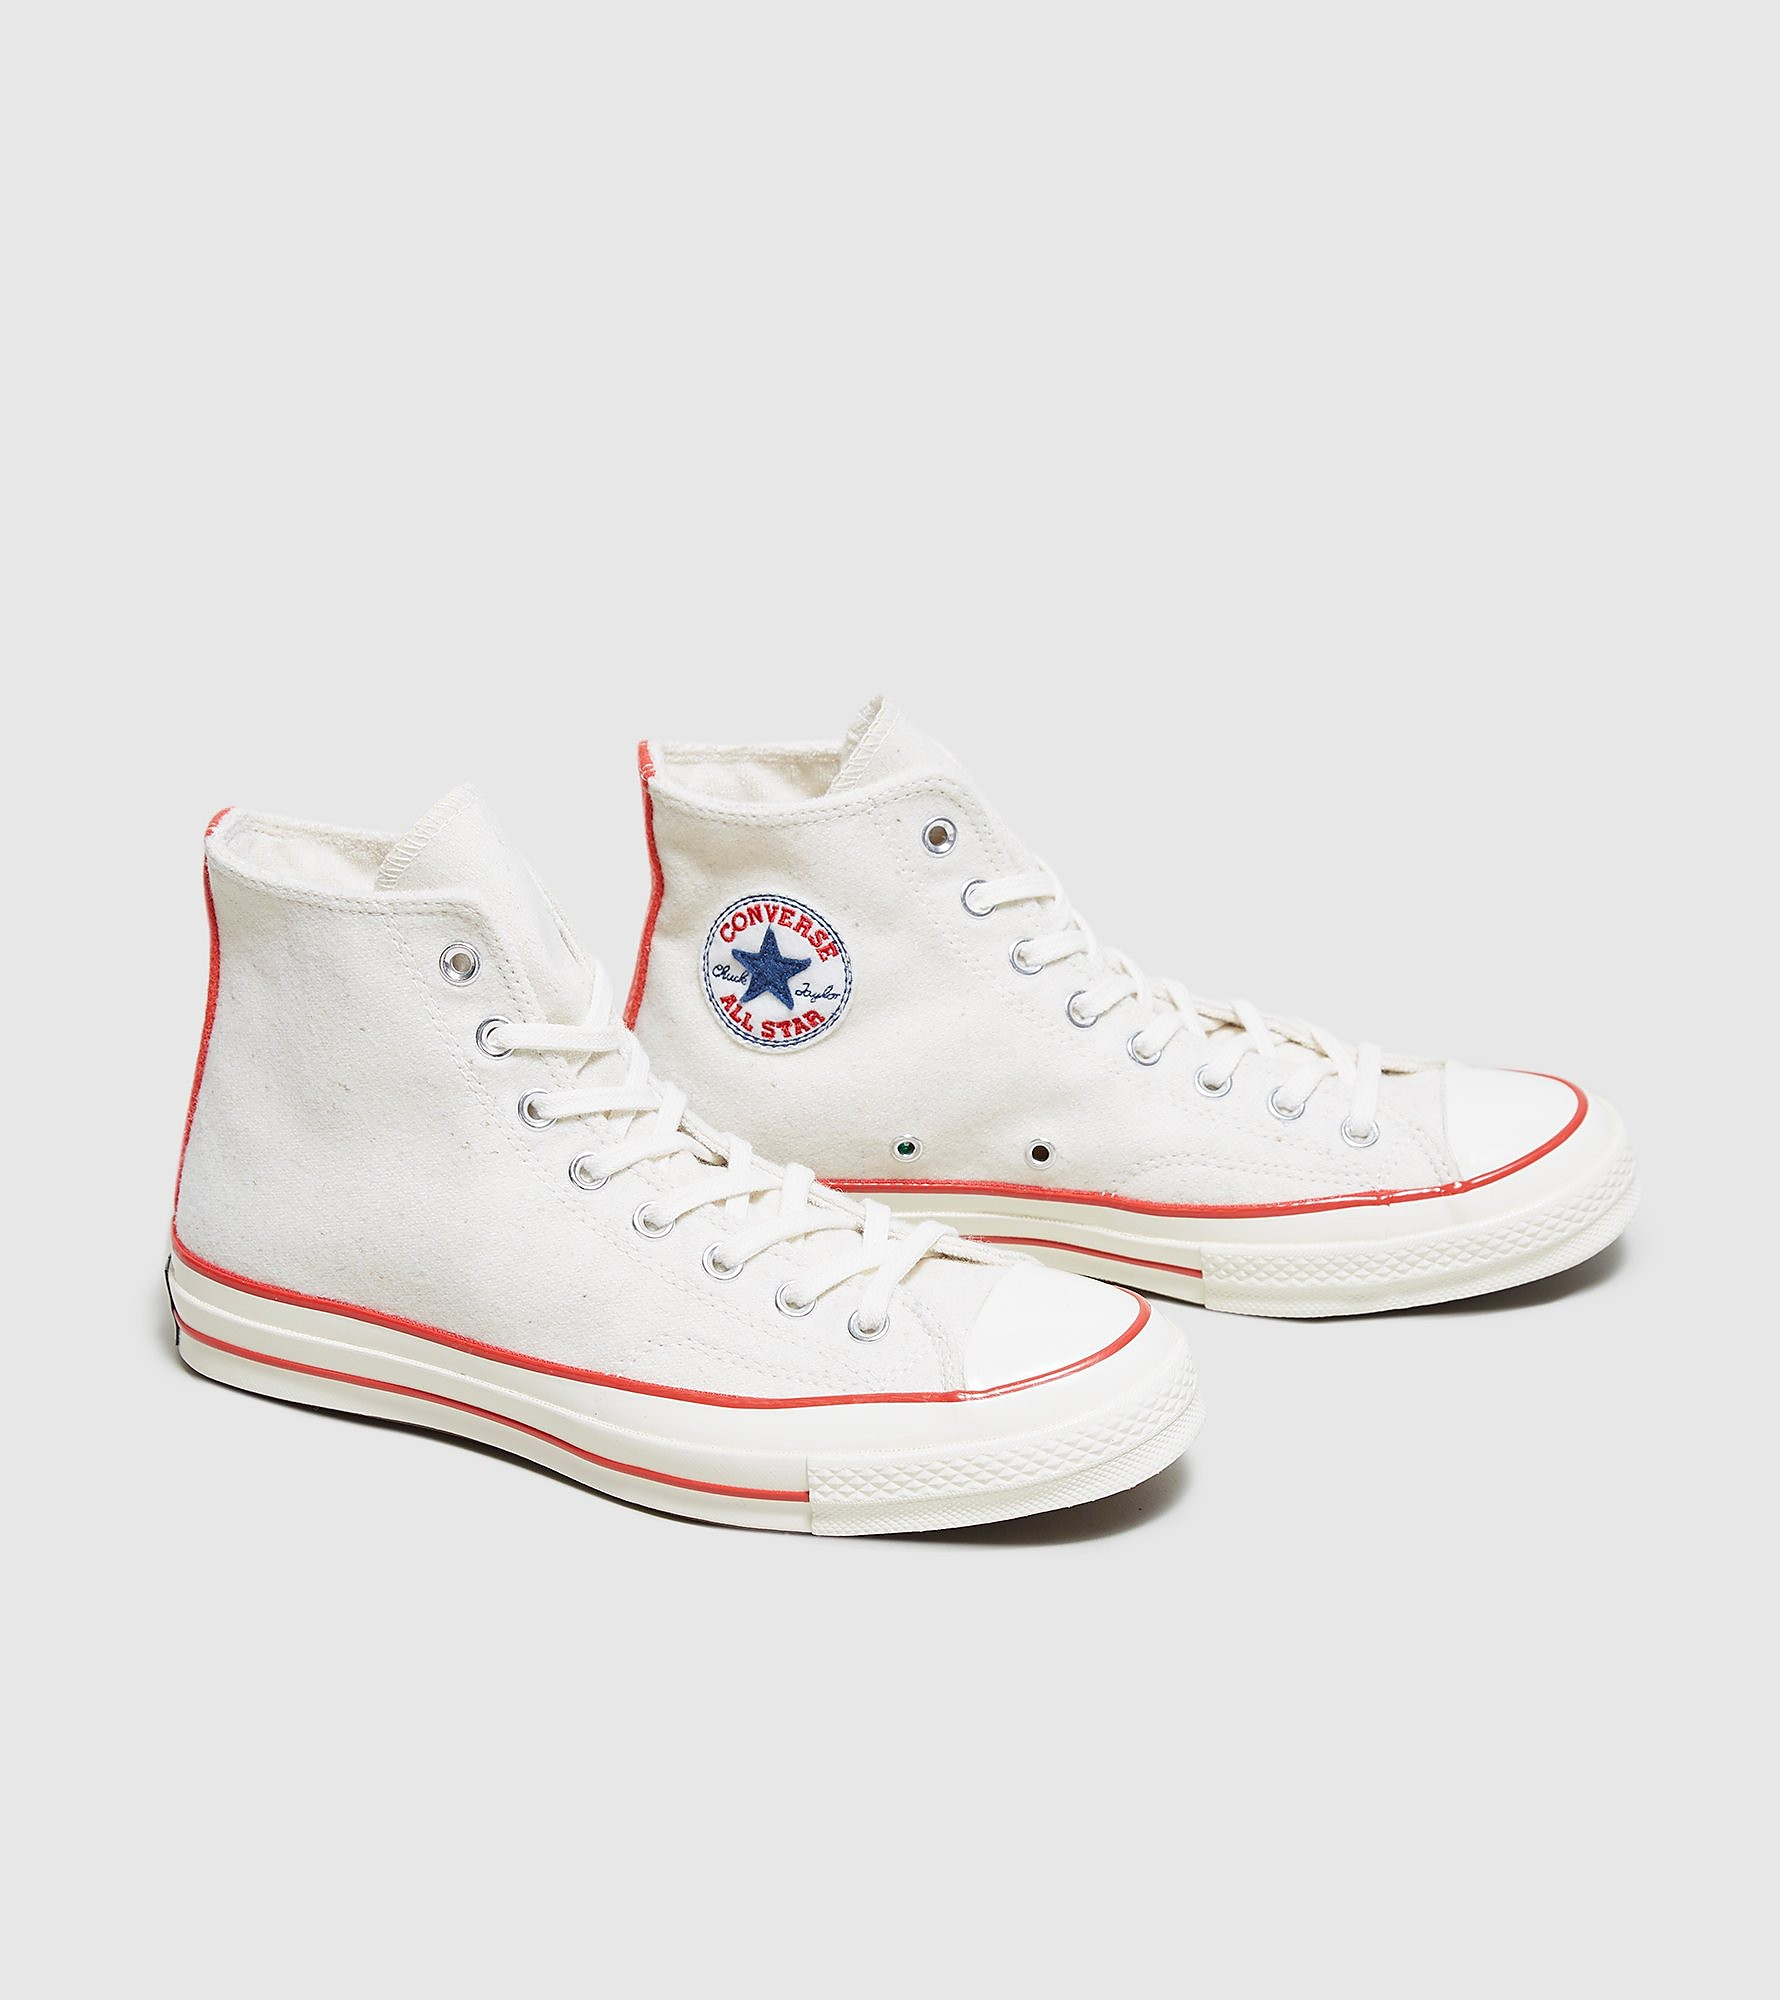 Converse Chuck Taylor All Star Hi '70 Wool